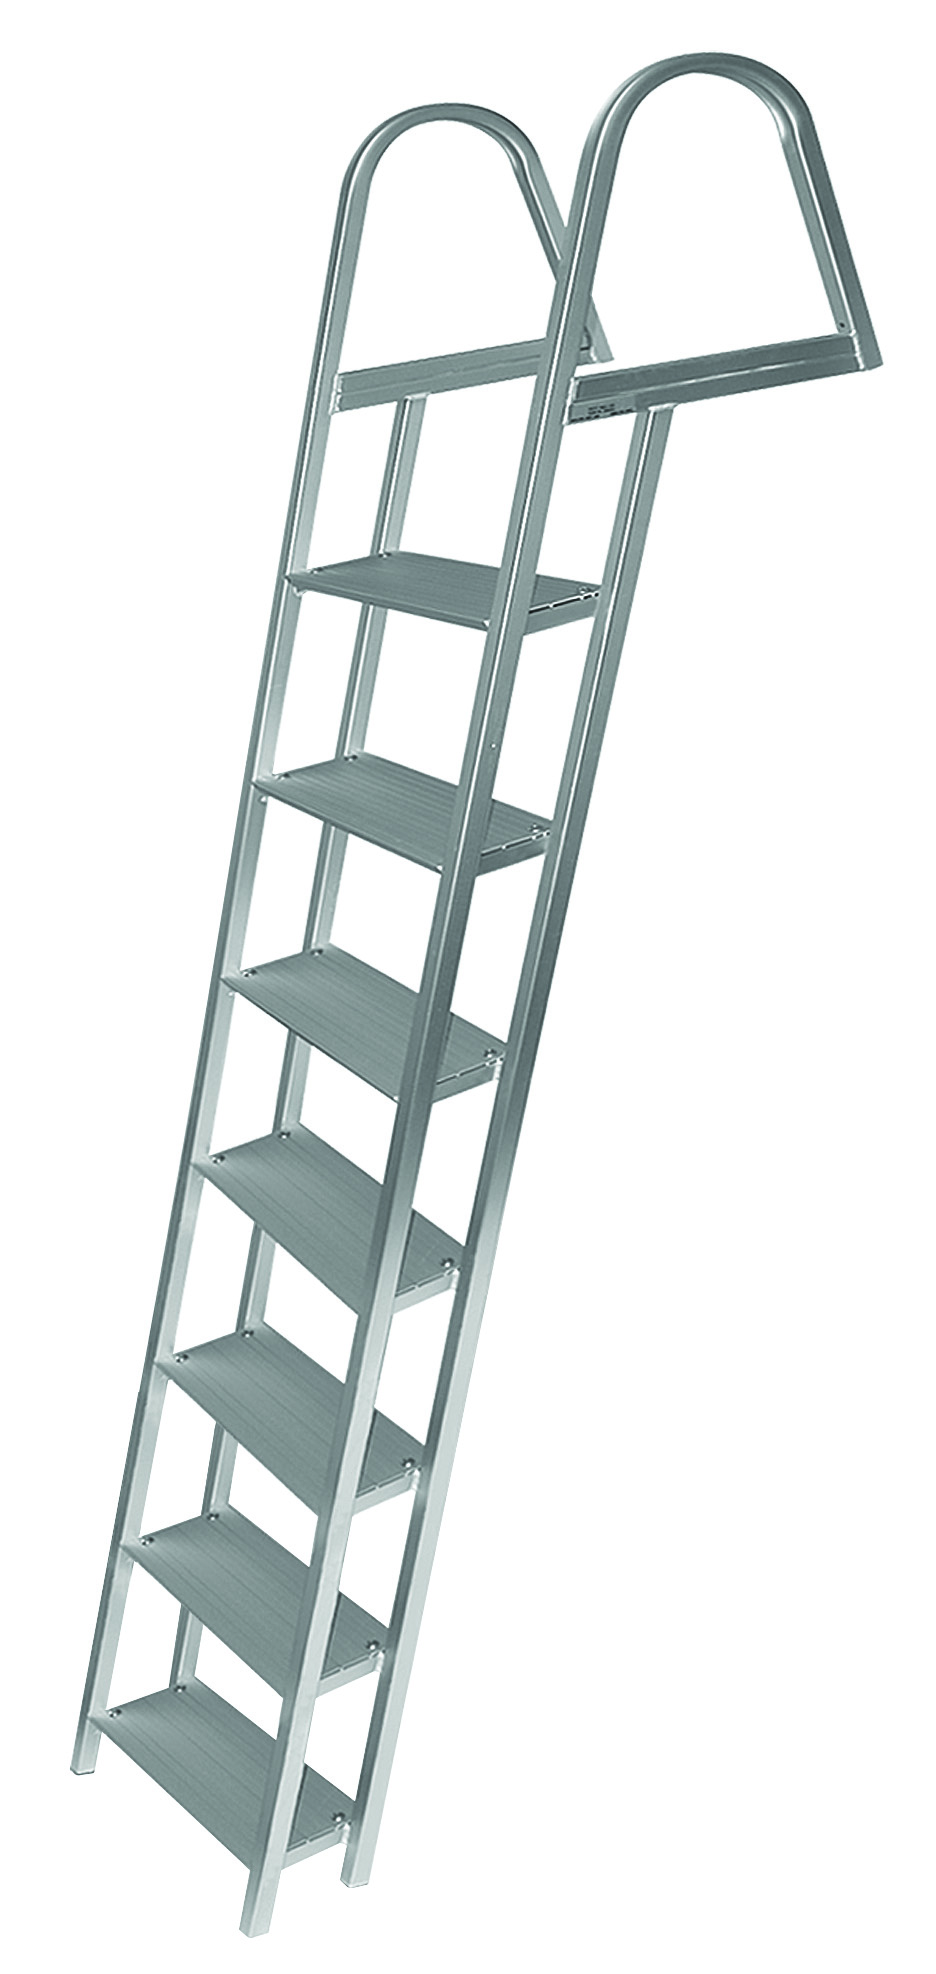 Jif Marine Fixed Angled Dock Ladder 3 4 5 Amp 7 Step